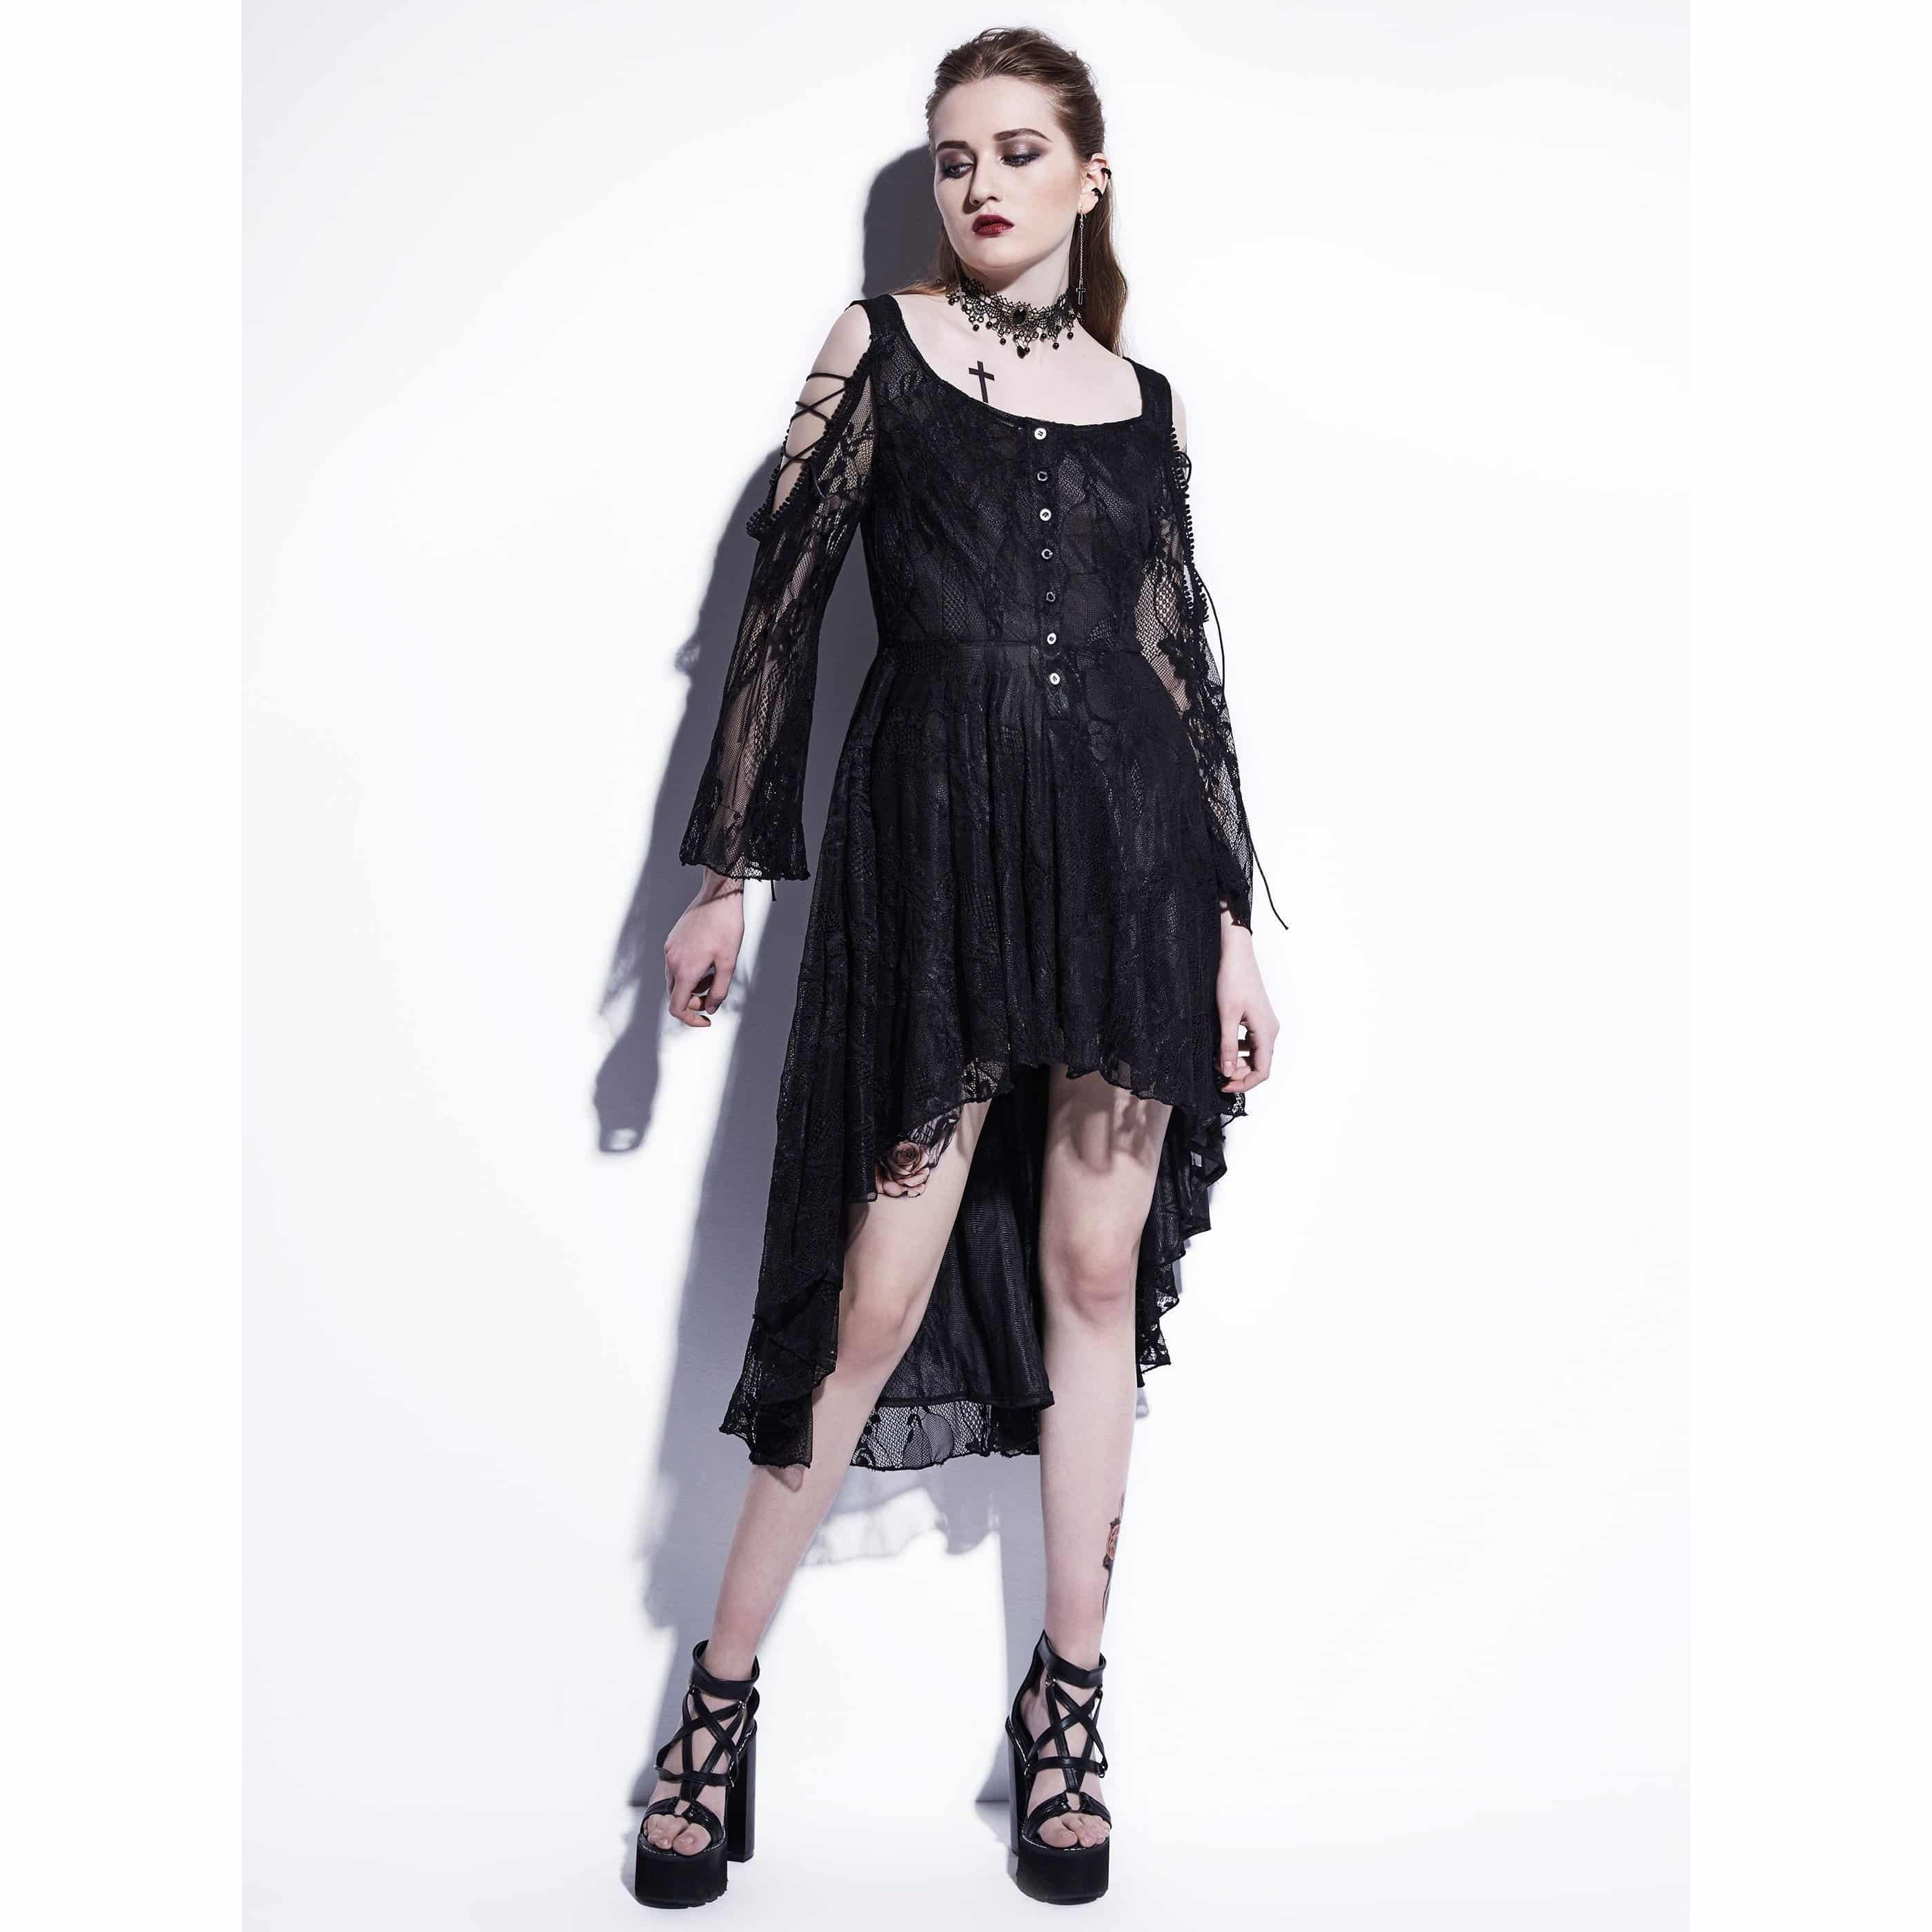 Hot Asymmetrical Witches Black Lace Dress In Black and White - The Black Ravens